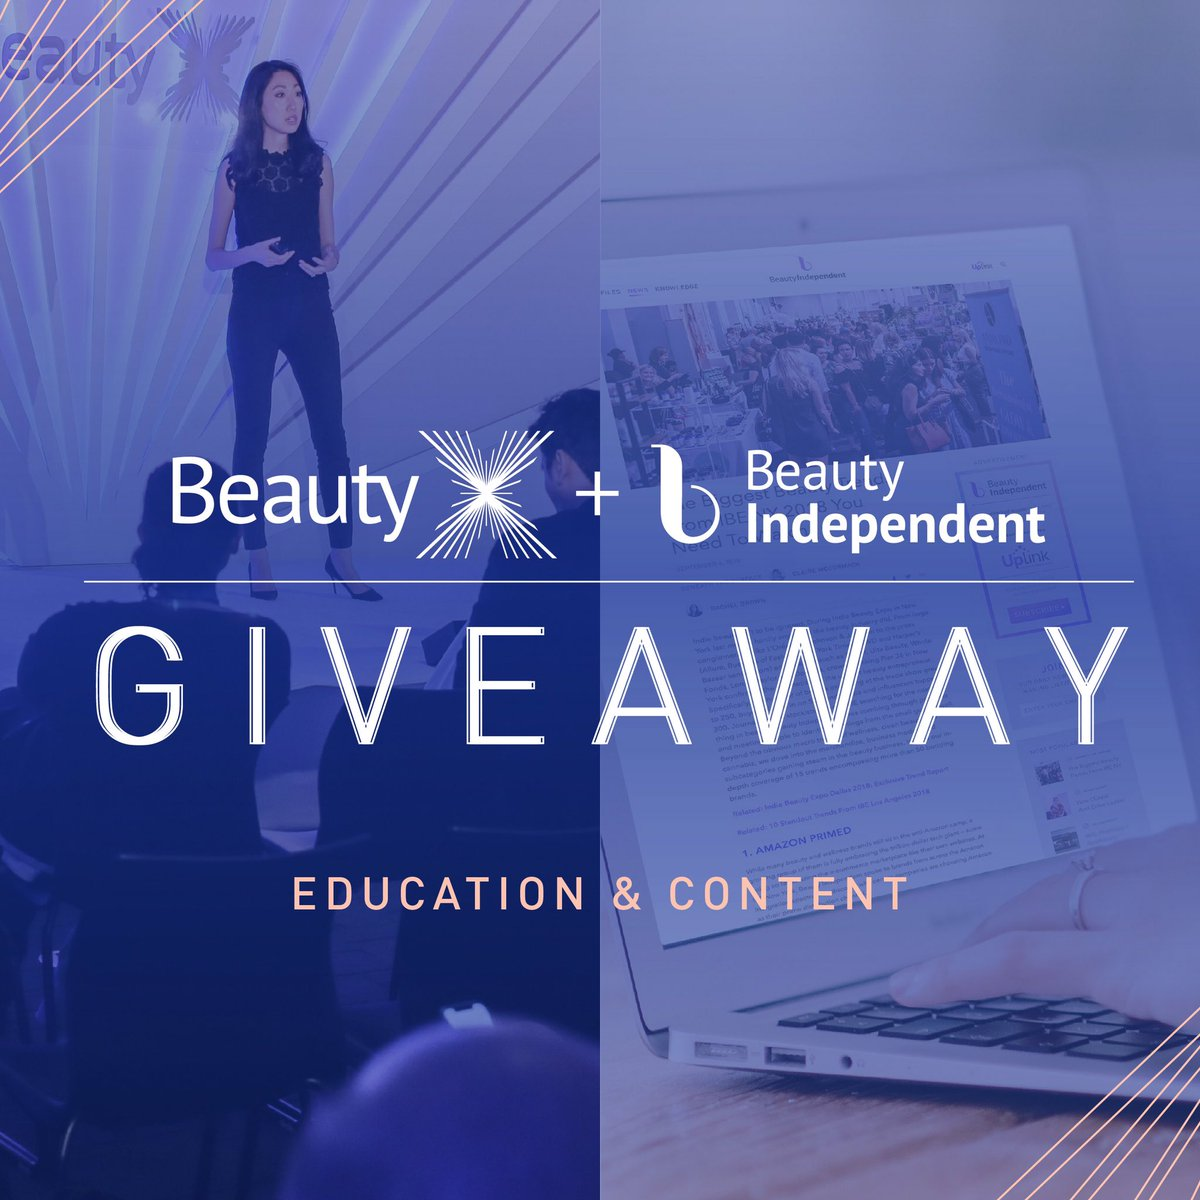 7eeb626b157 ... retail execs about building a successful wholesale business, & 1 Annual  Subscription to Beauty Independent. Giveaway closes 4/26 at 6PM EST: ...